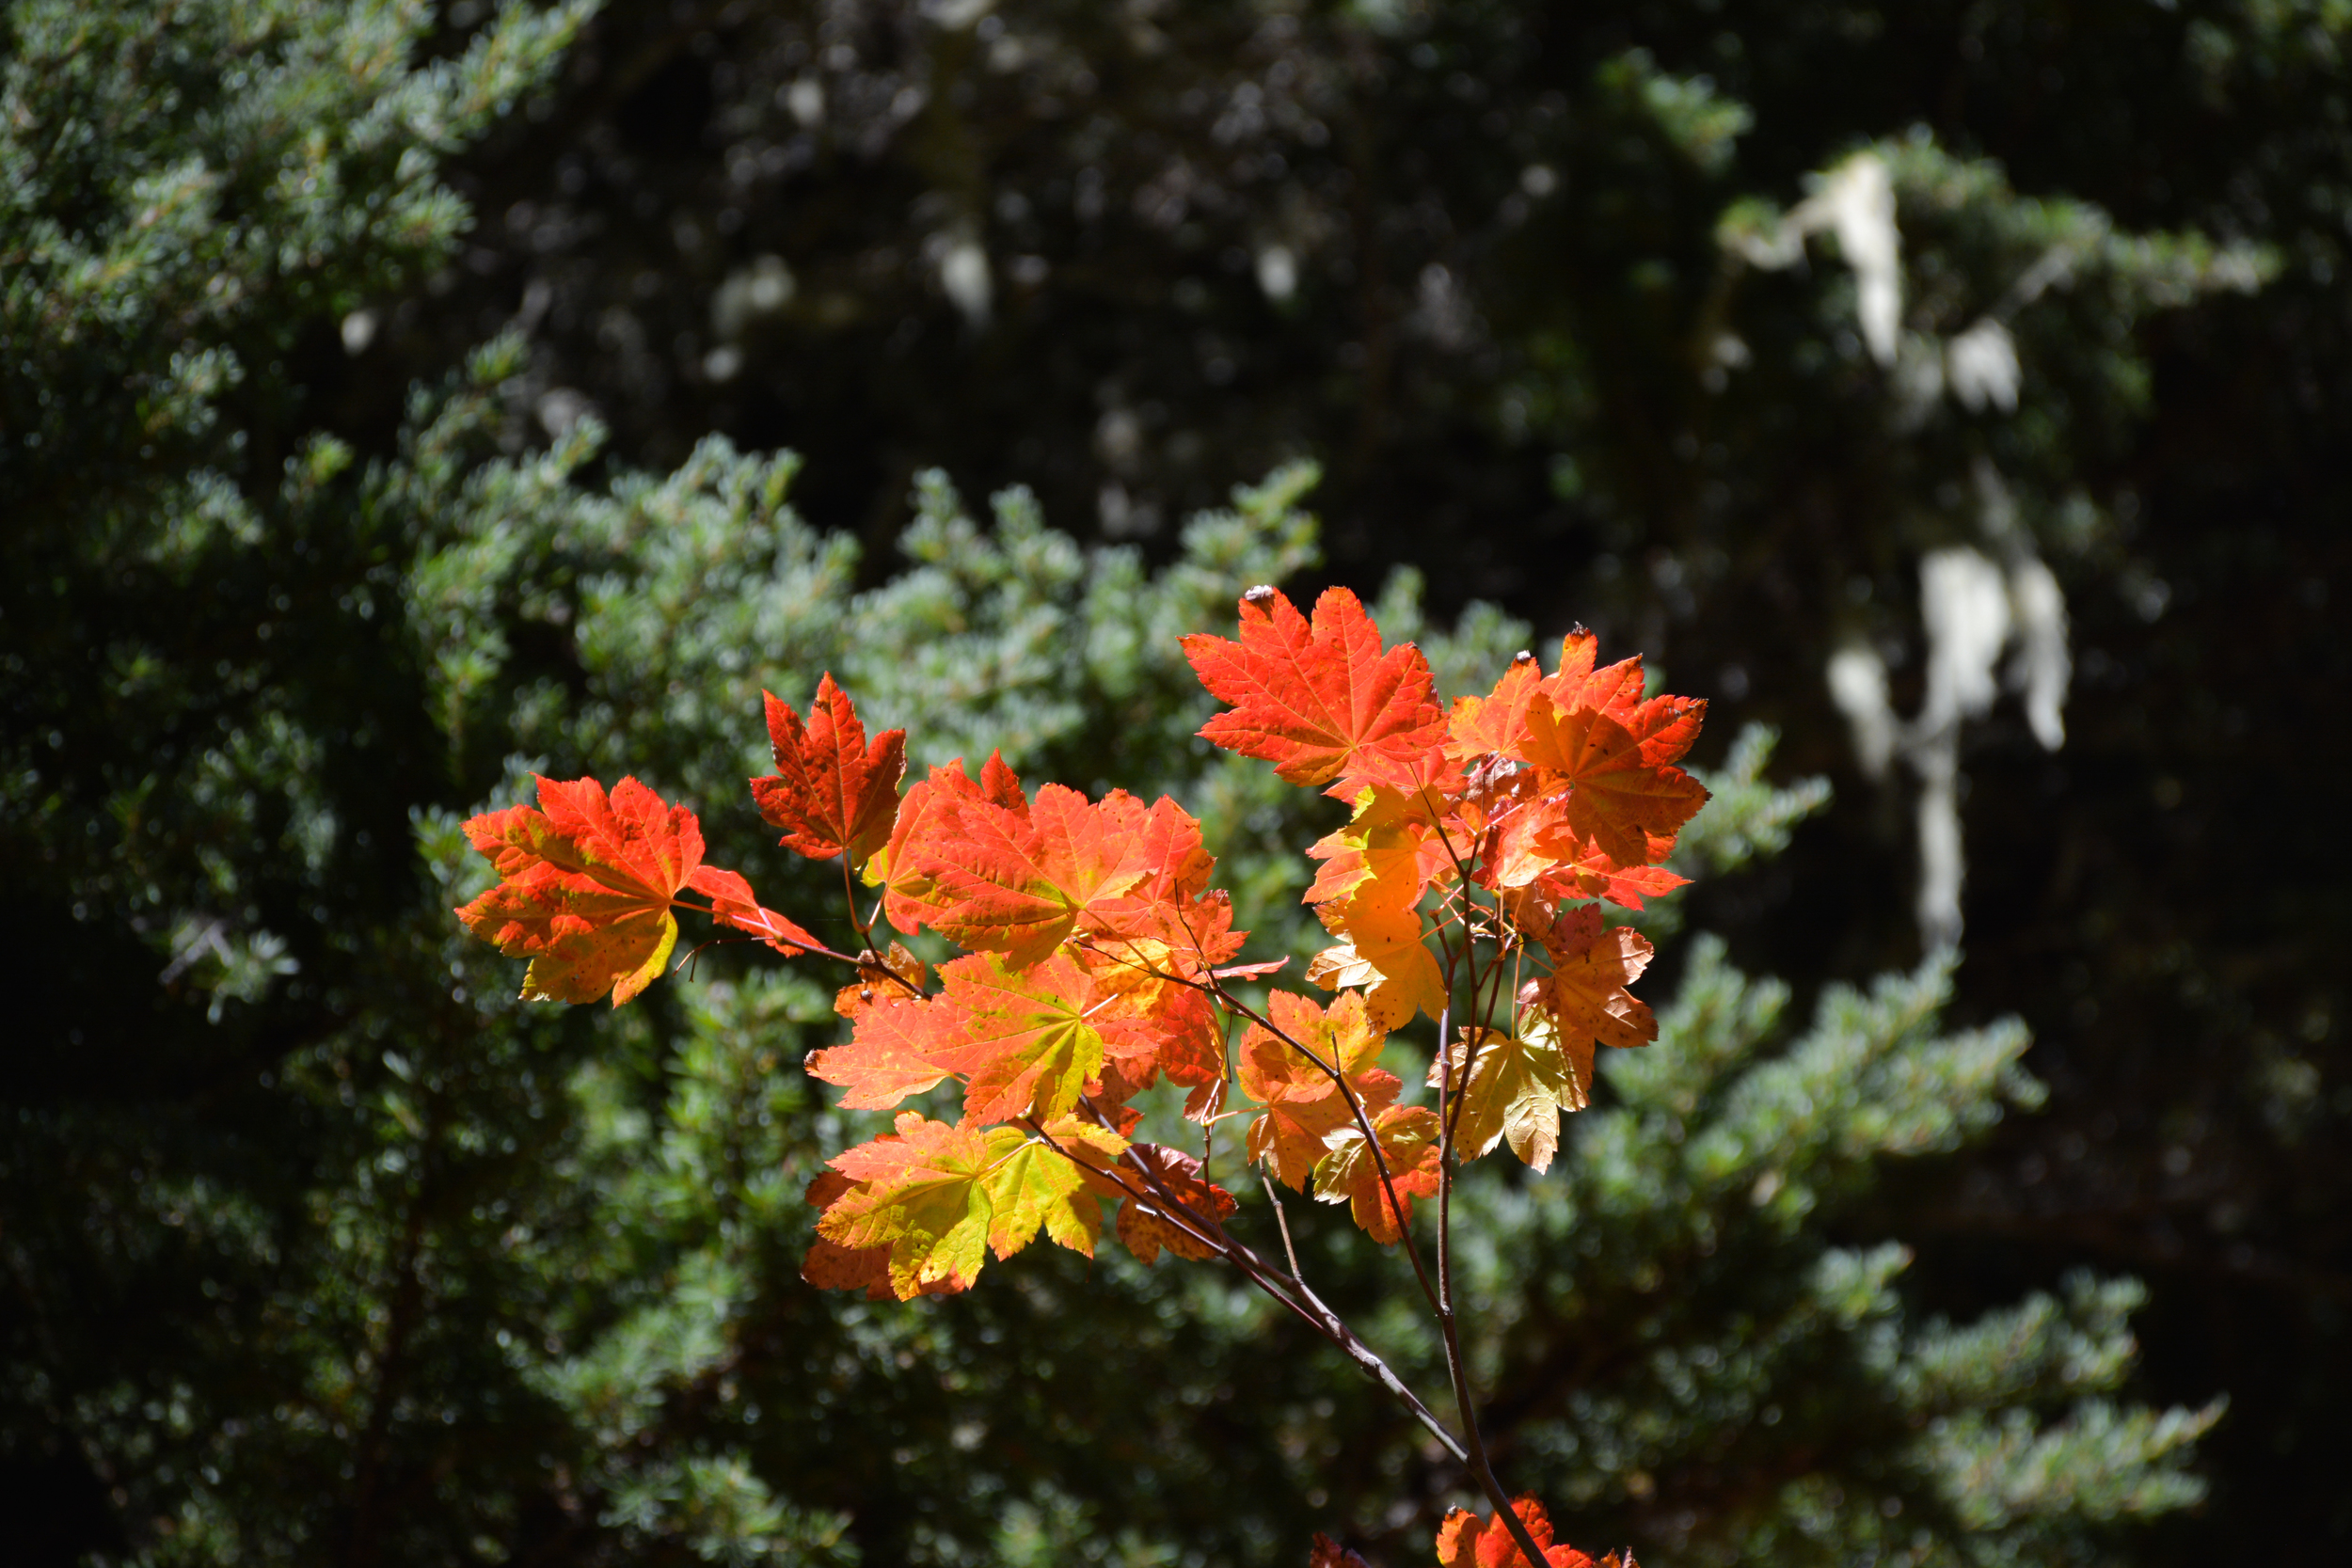 Bright maple leaves against evergreens in the backdrop